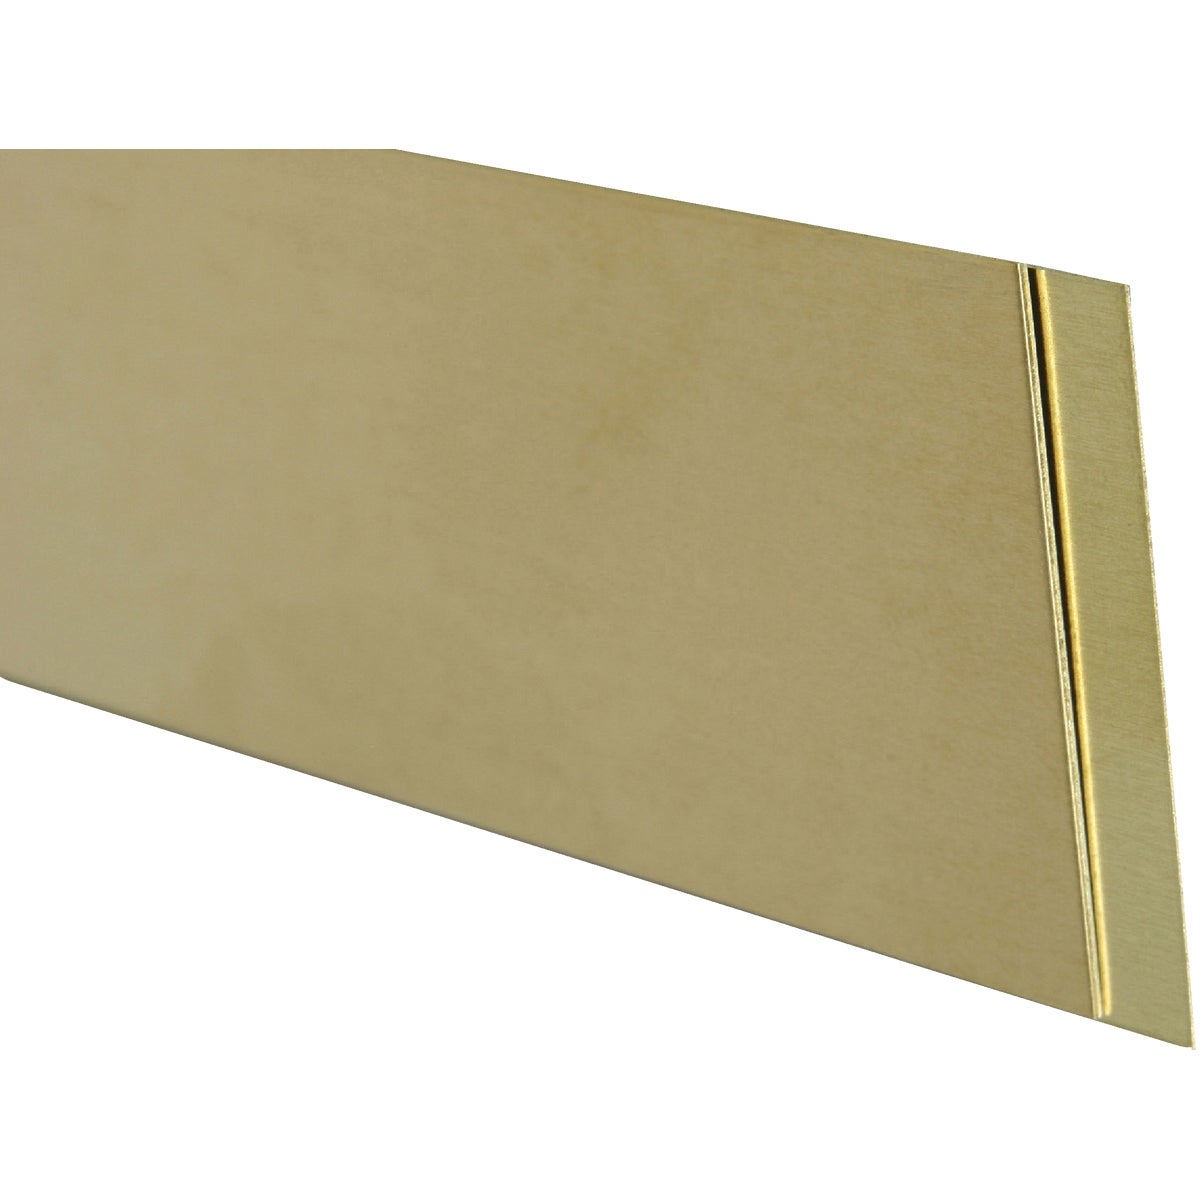 .064X3/4X12 BRASS STRIP - 247 by K&s Precision Metals